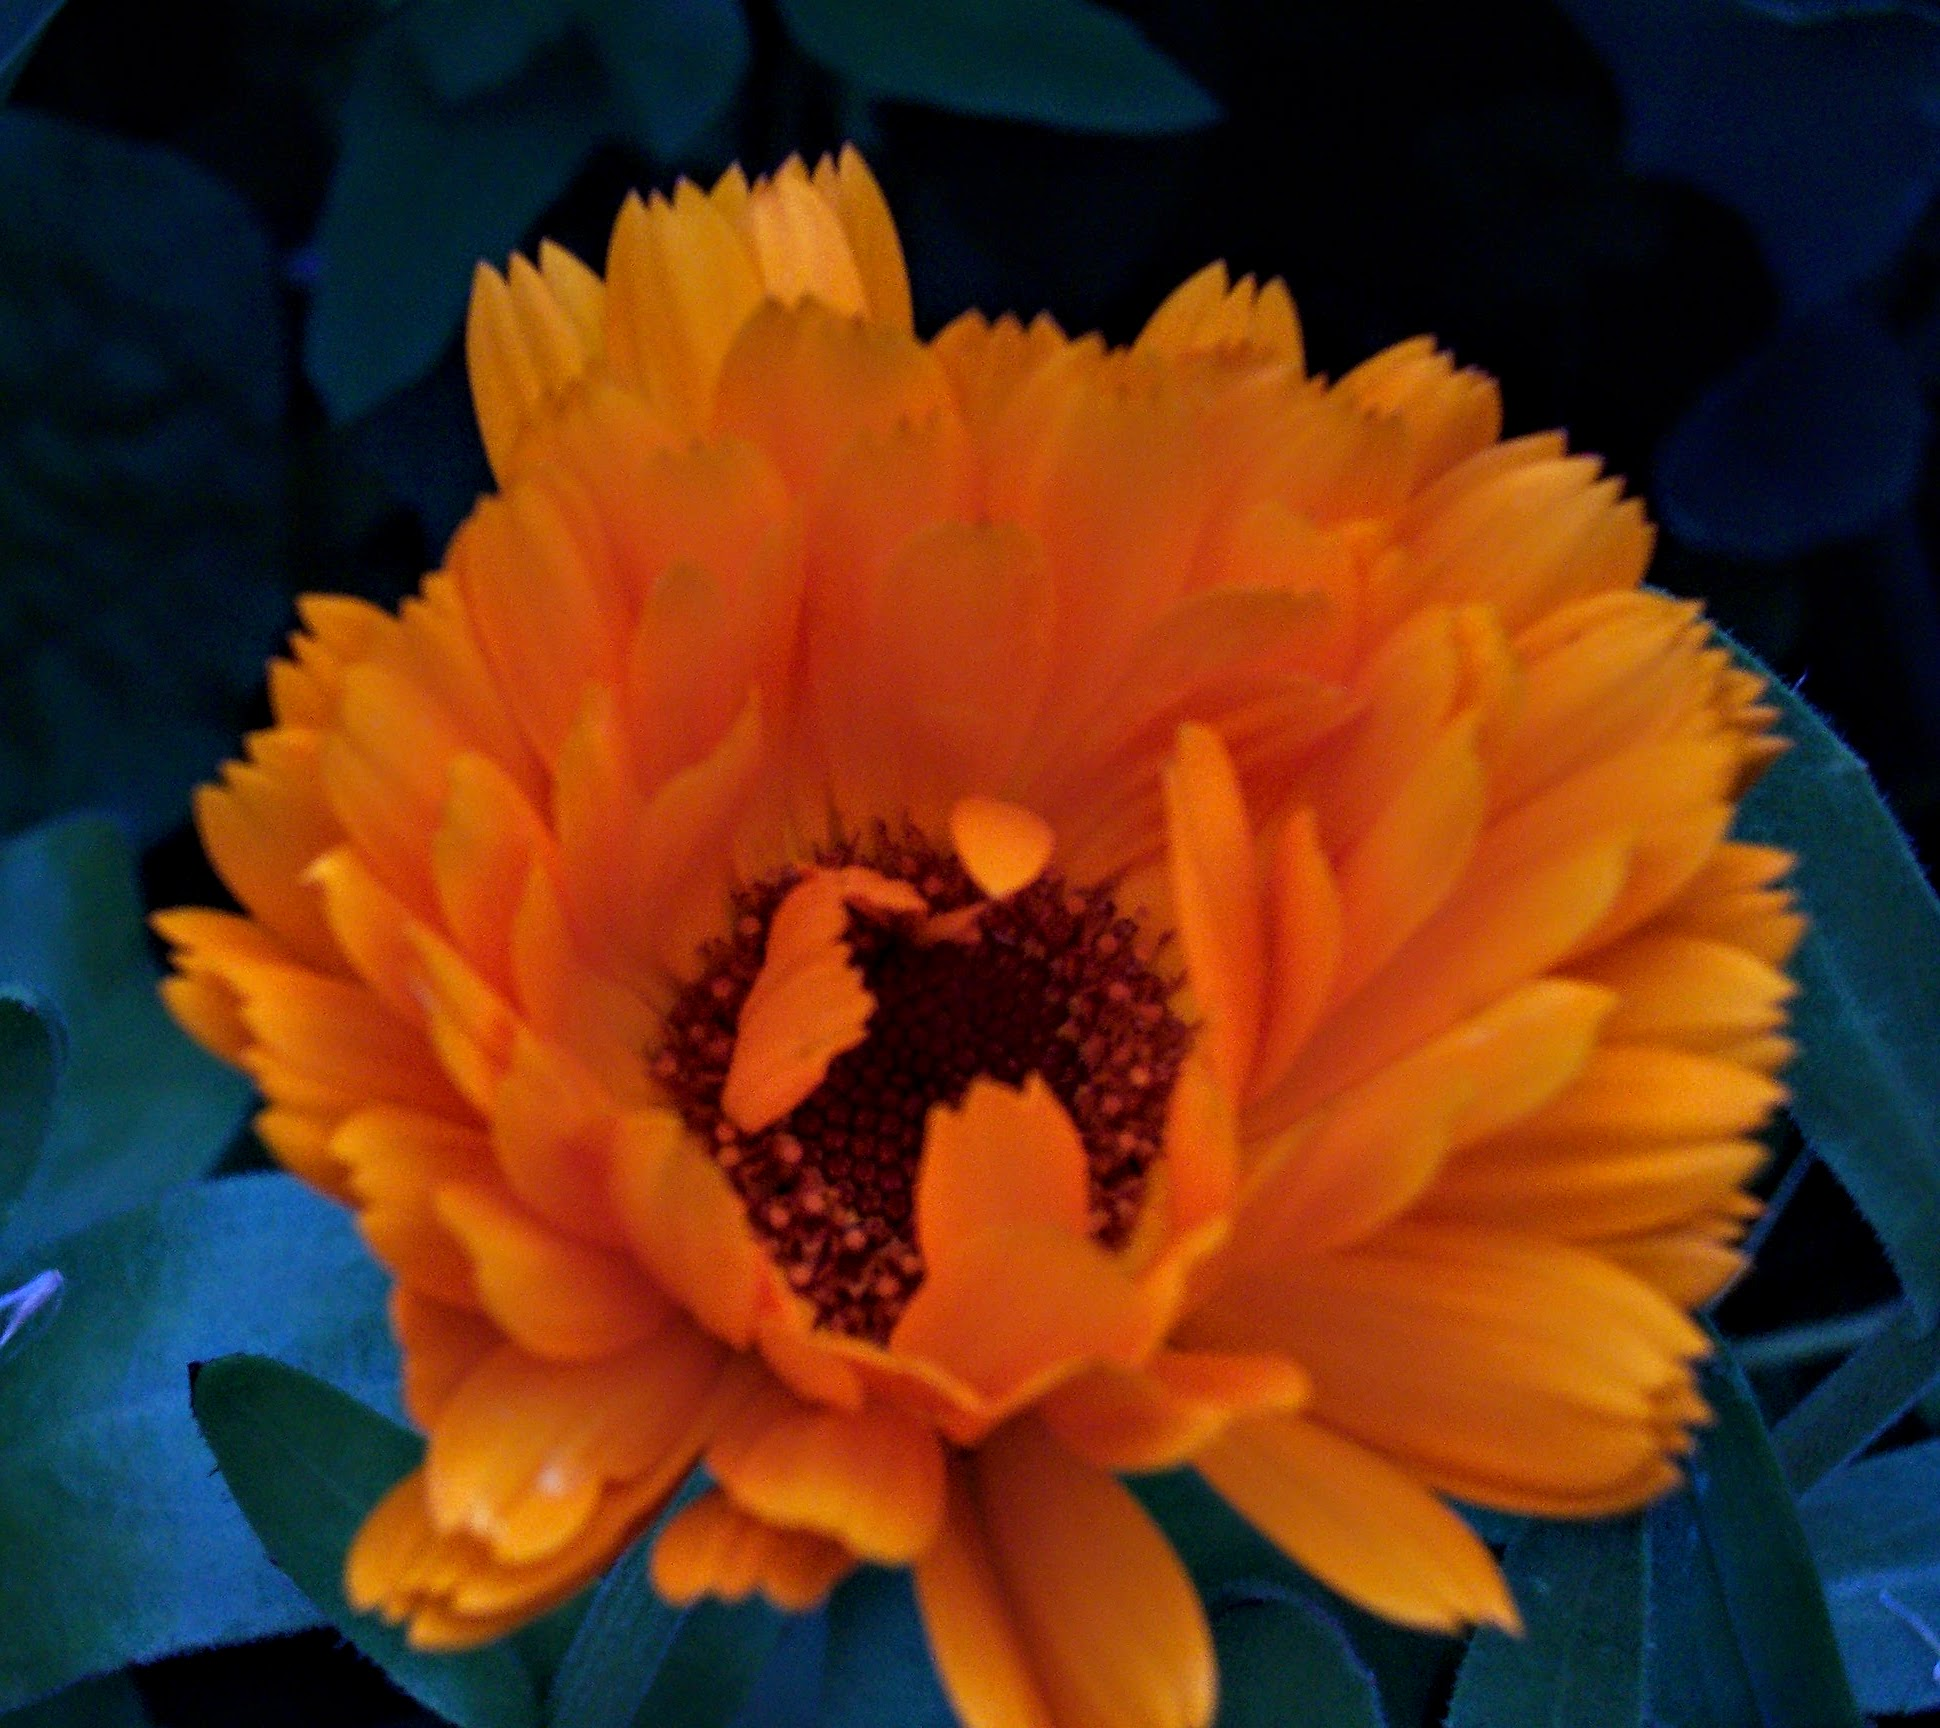 Image of a calendula flower